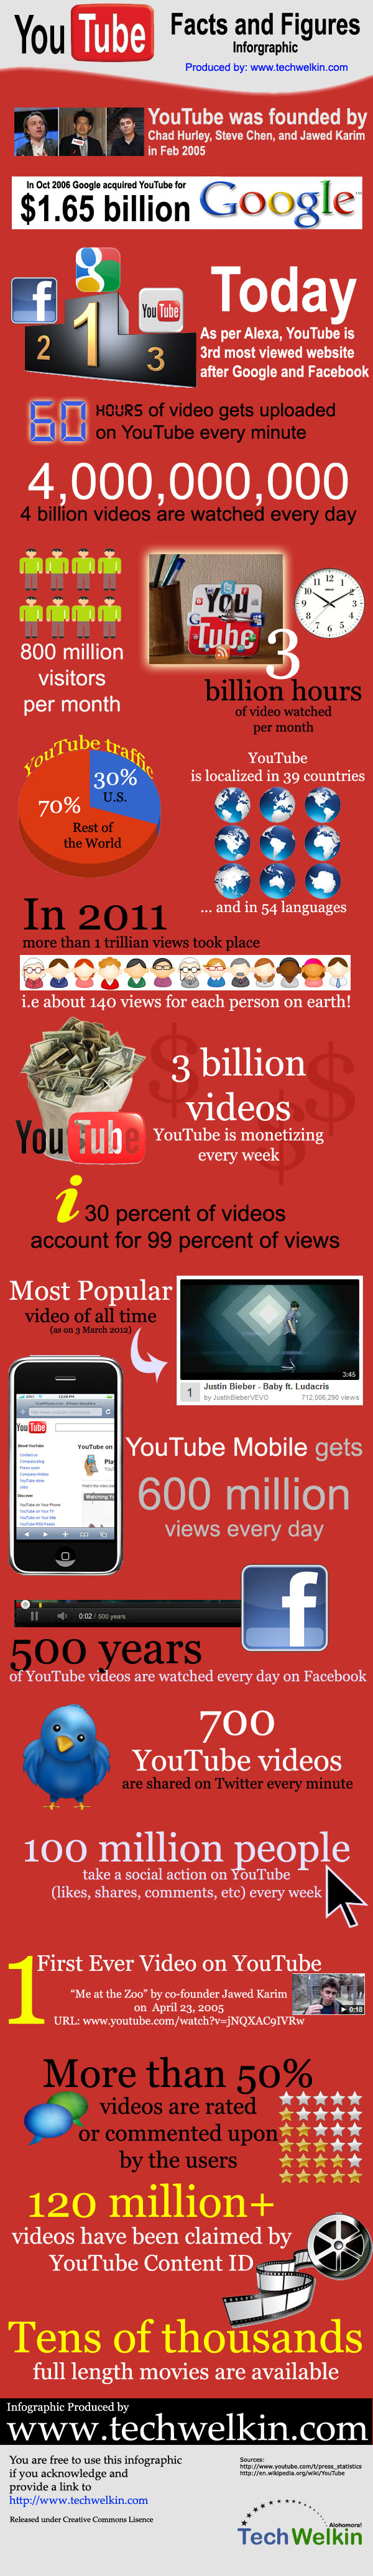 Todo lo que debes saber acerca de Youtube en una infografía youtube facts figures by techwelkin